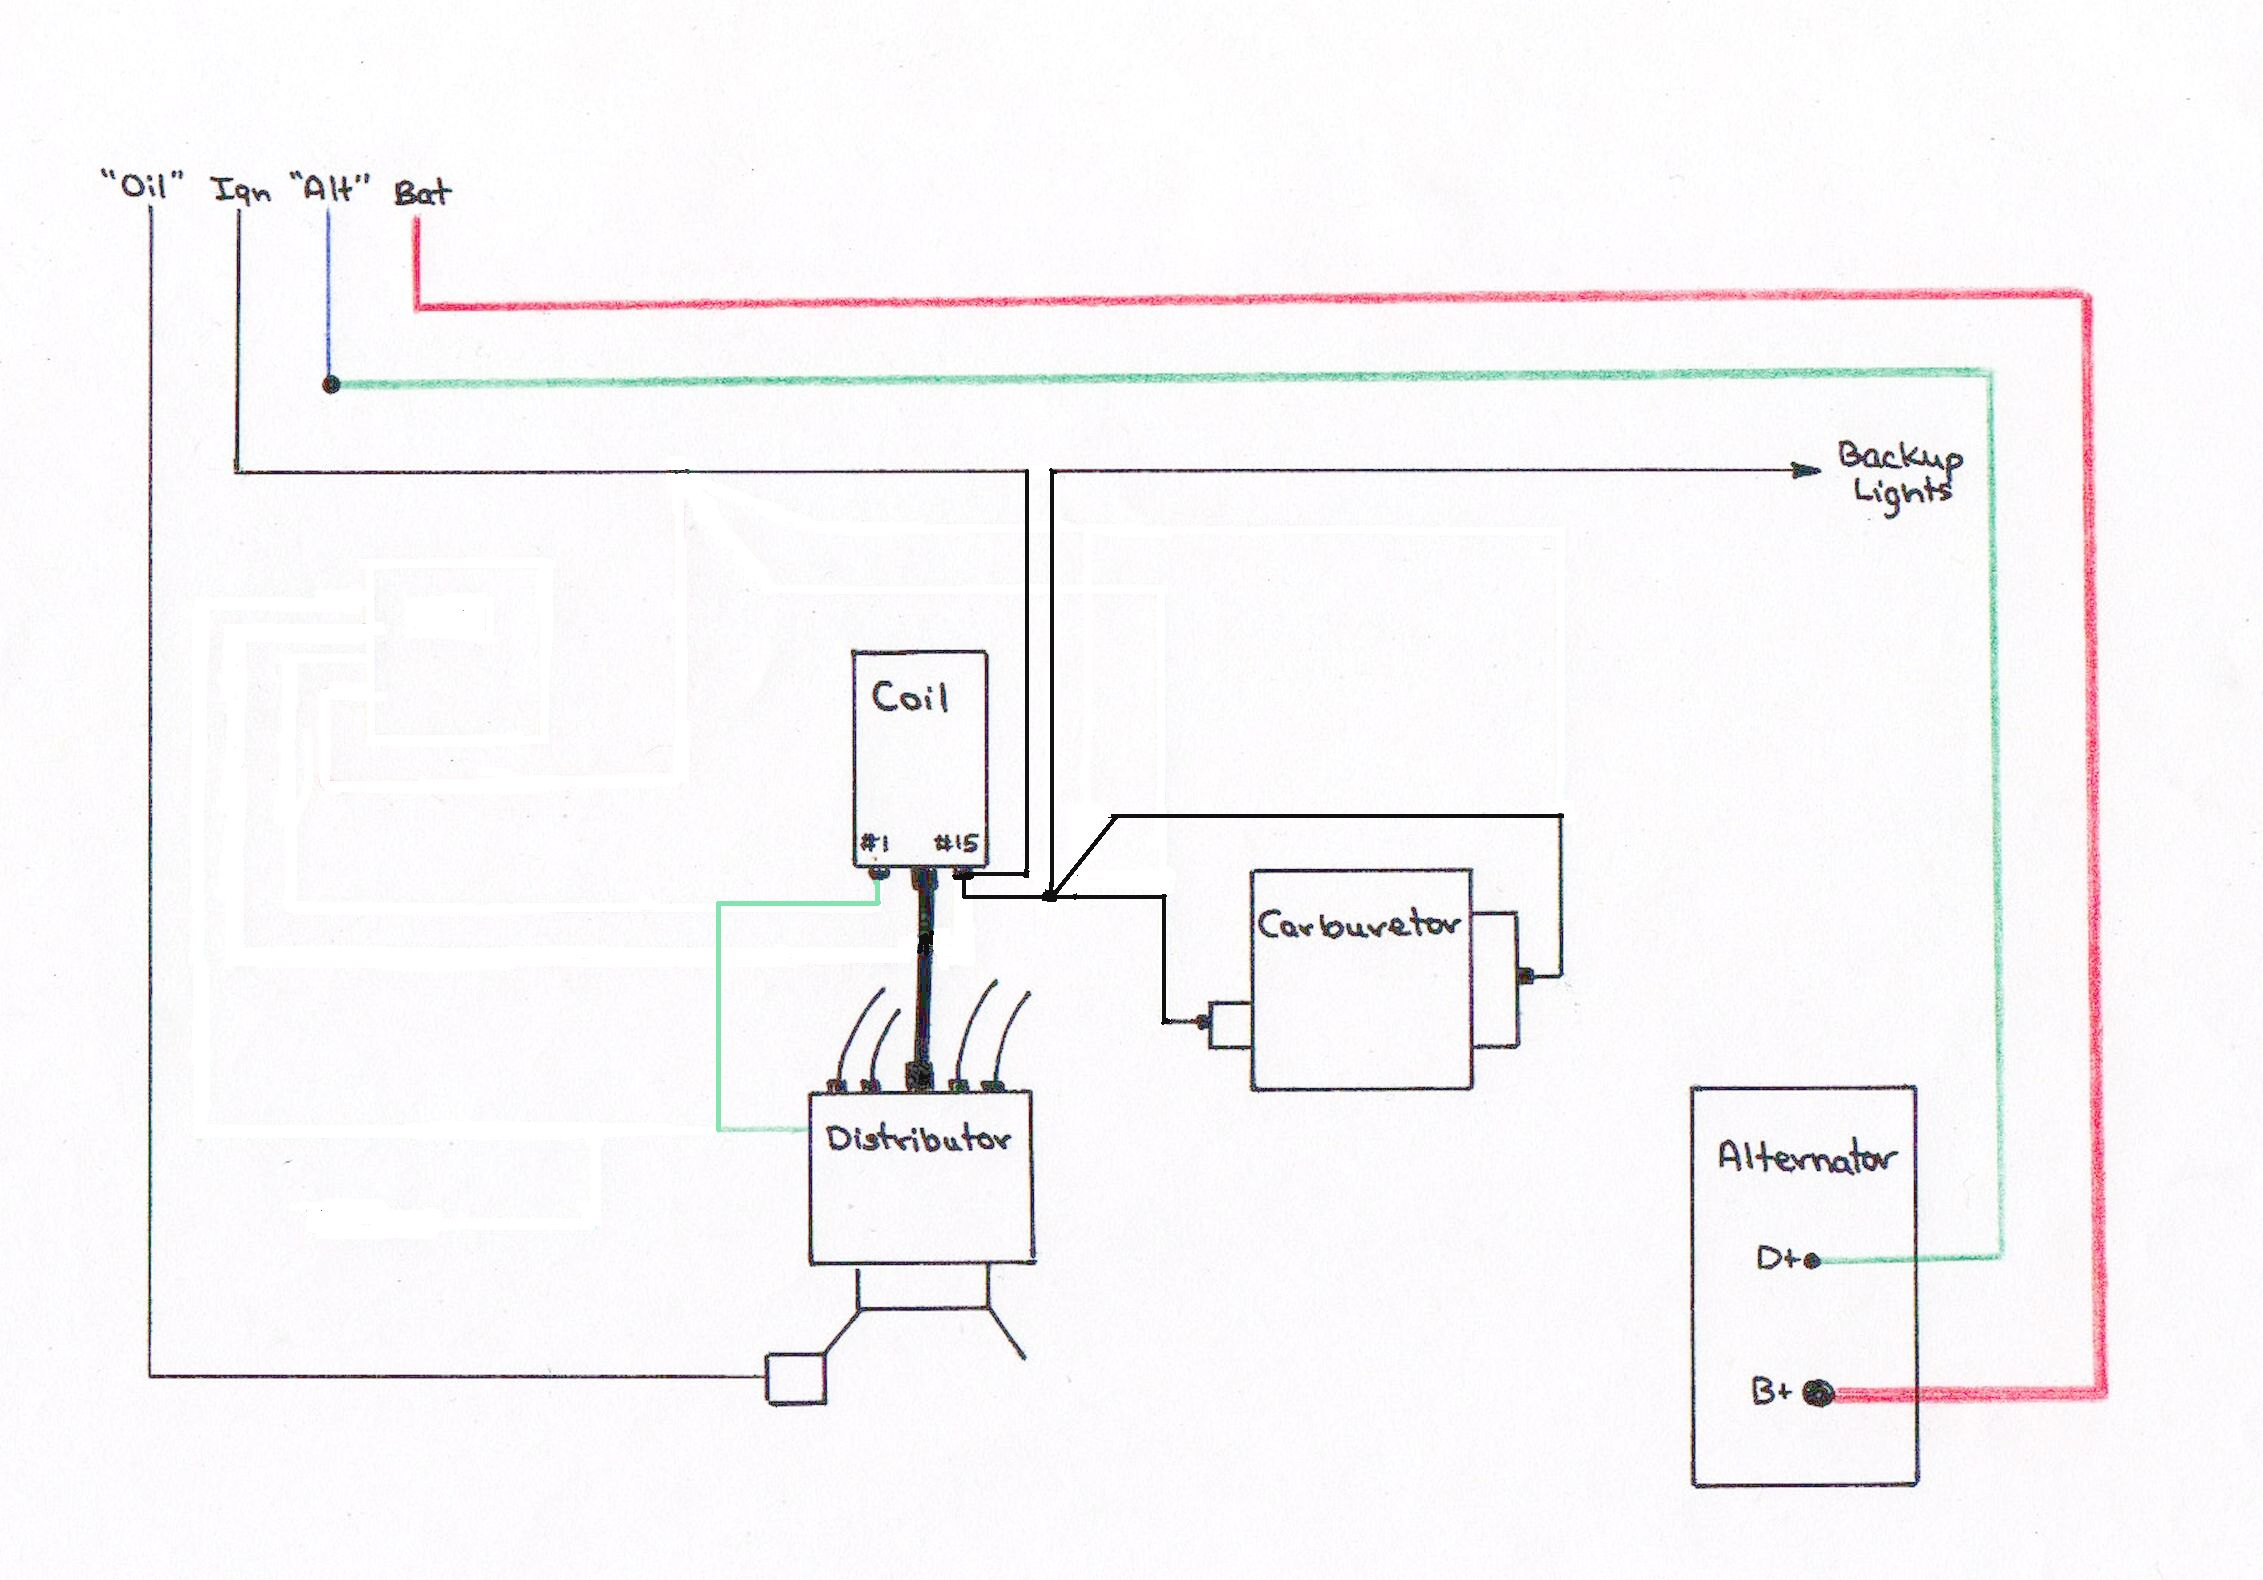 Alternator Exciter Wiring Diagram | Wiring Library - Alternator Exciter Wiring Diagram